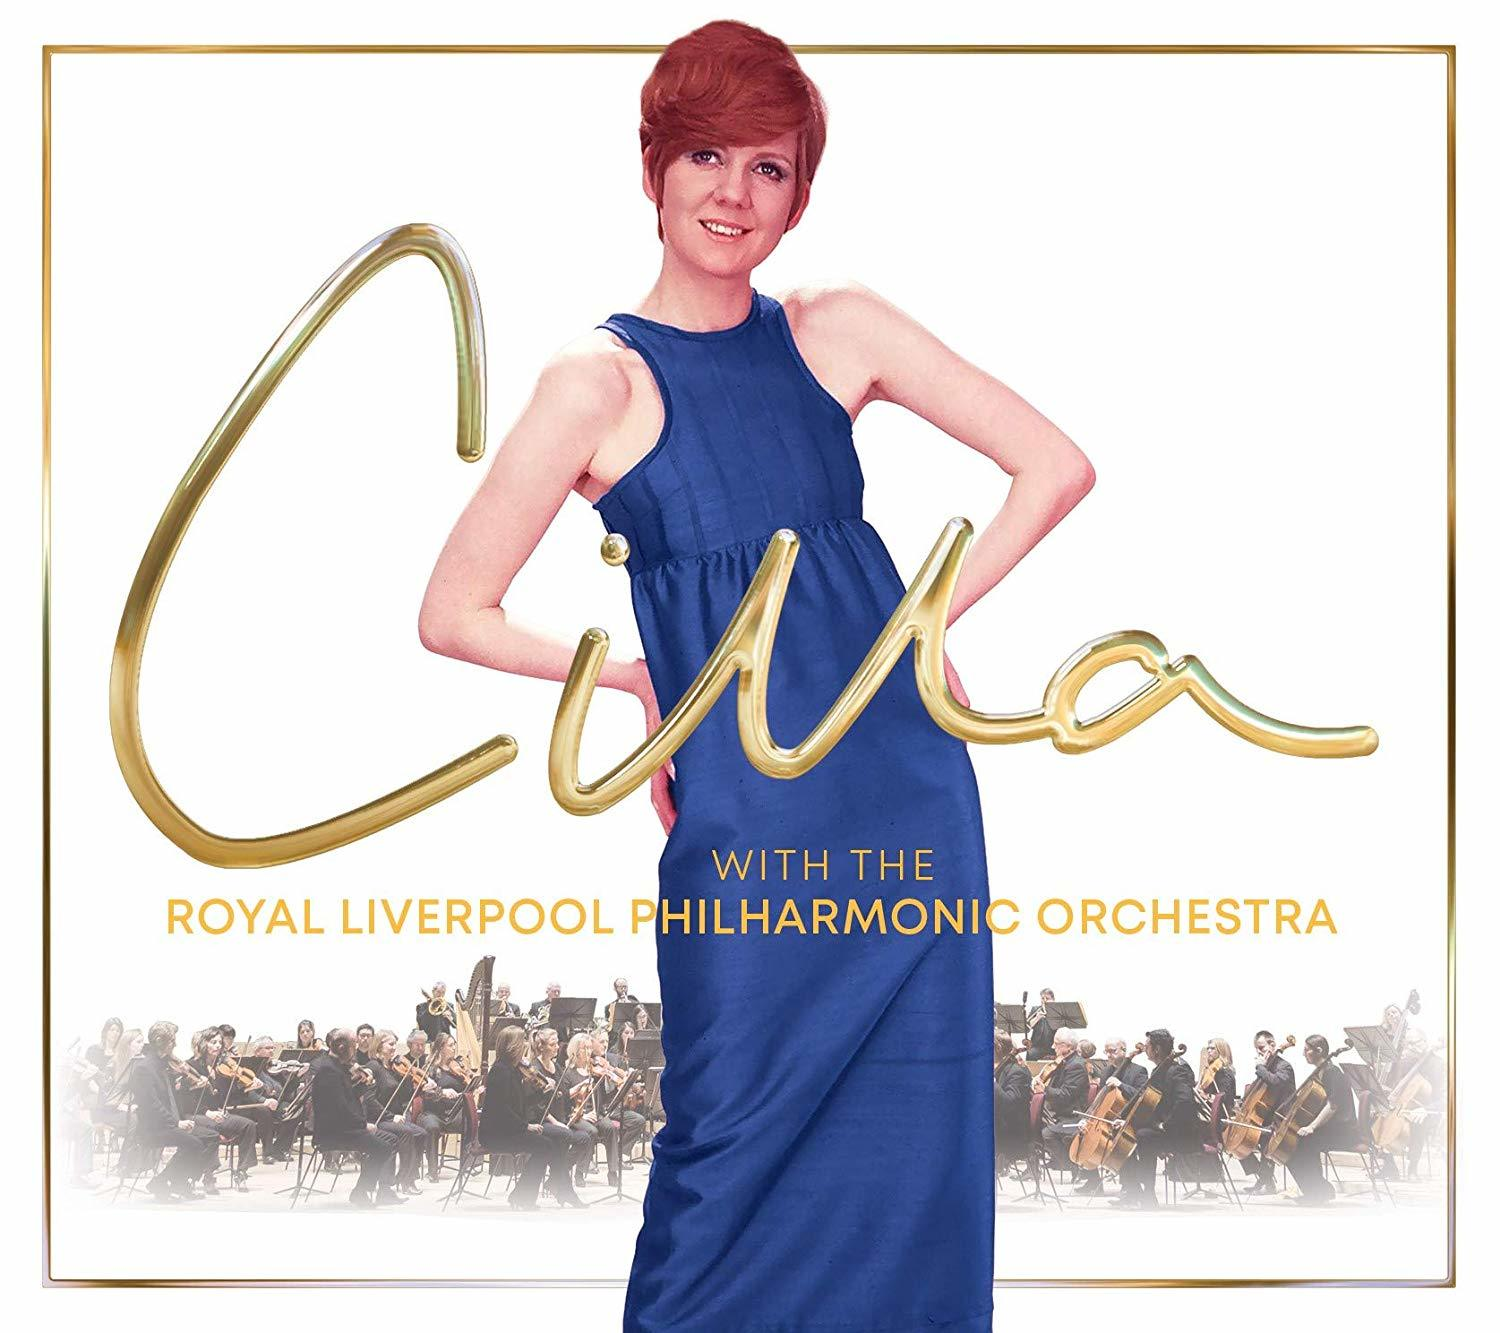 Cilla With The Royal Liverpool Philharmonic by Cilla Black image